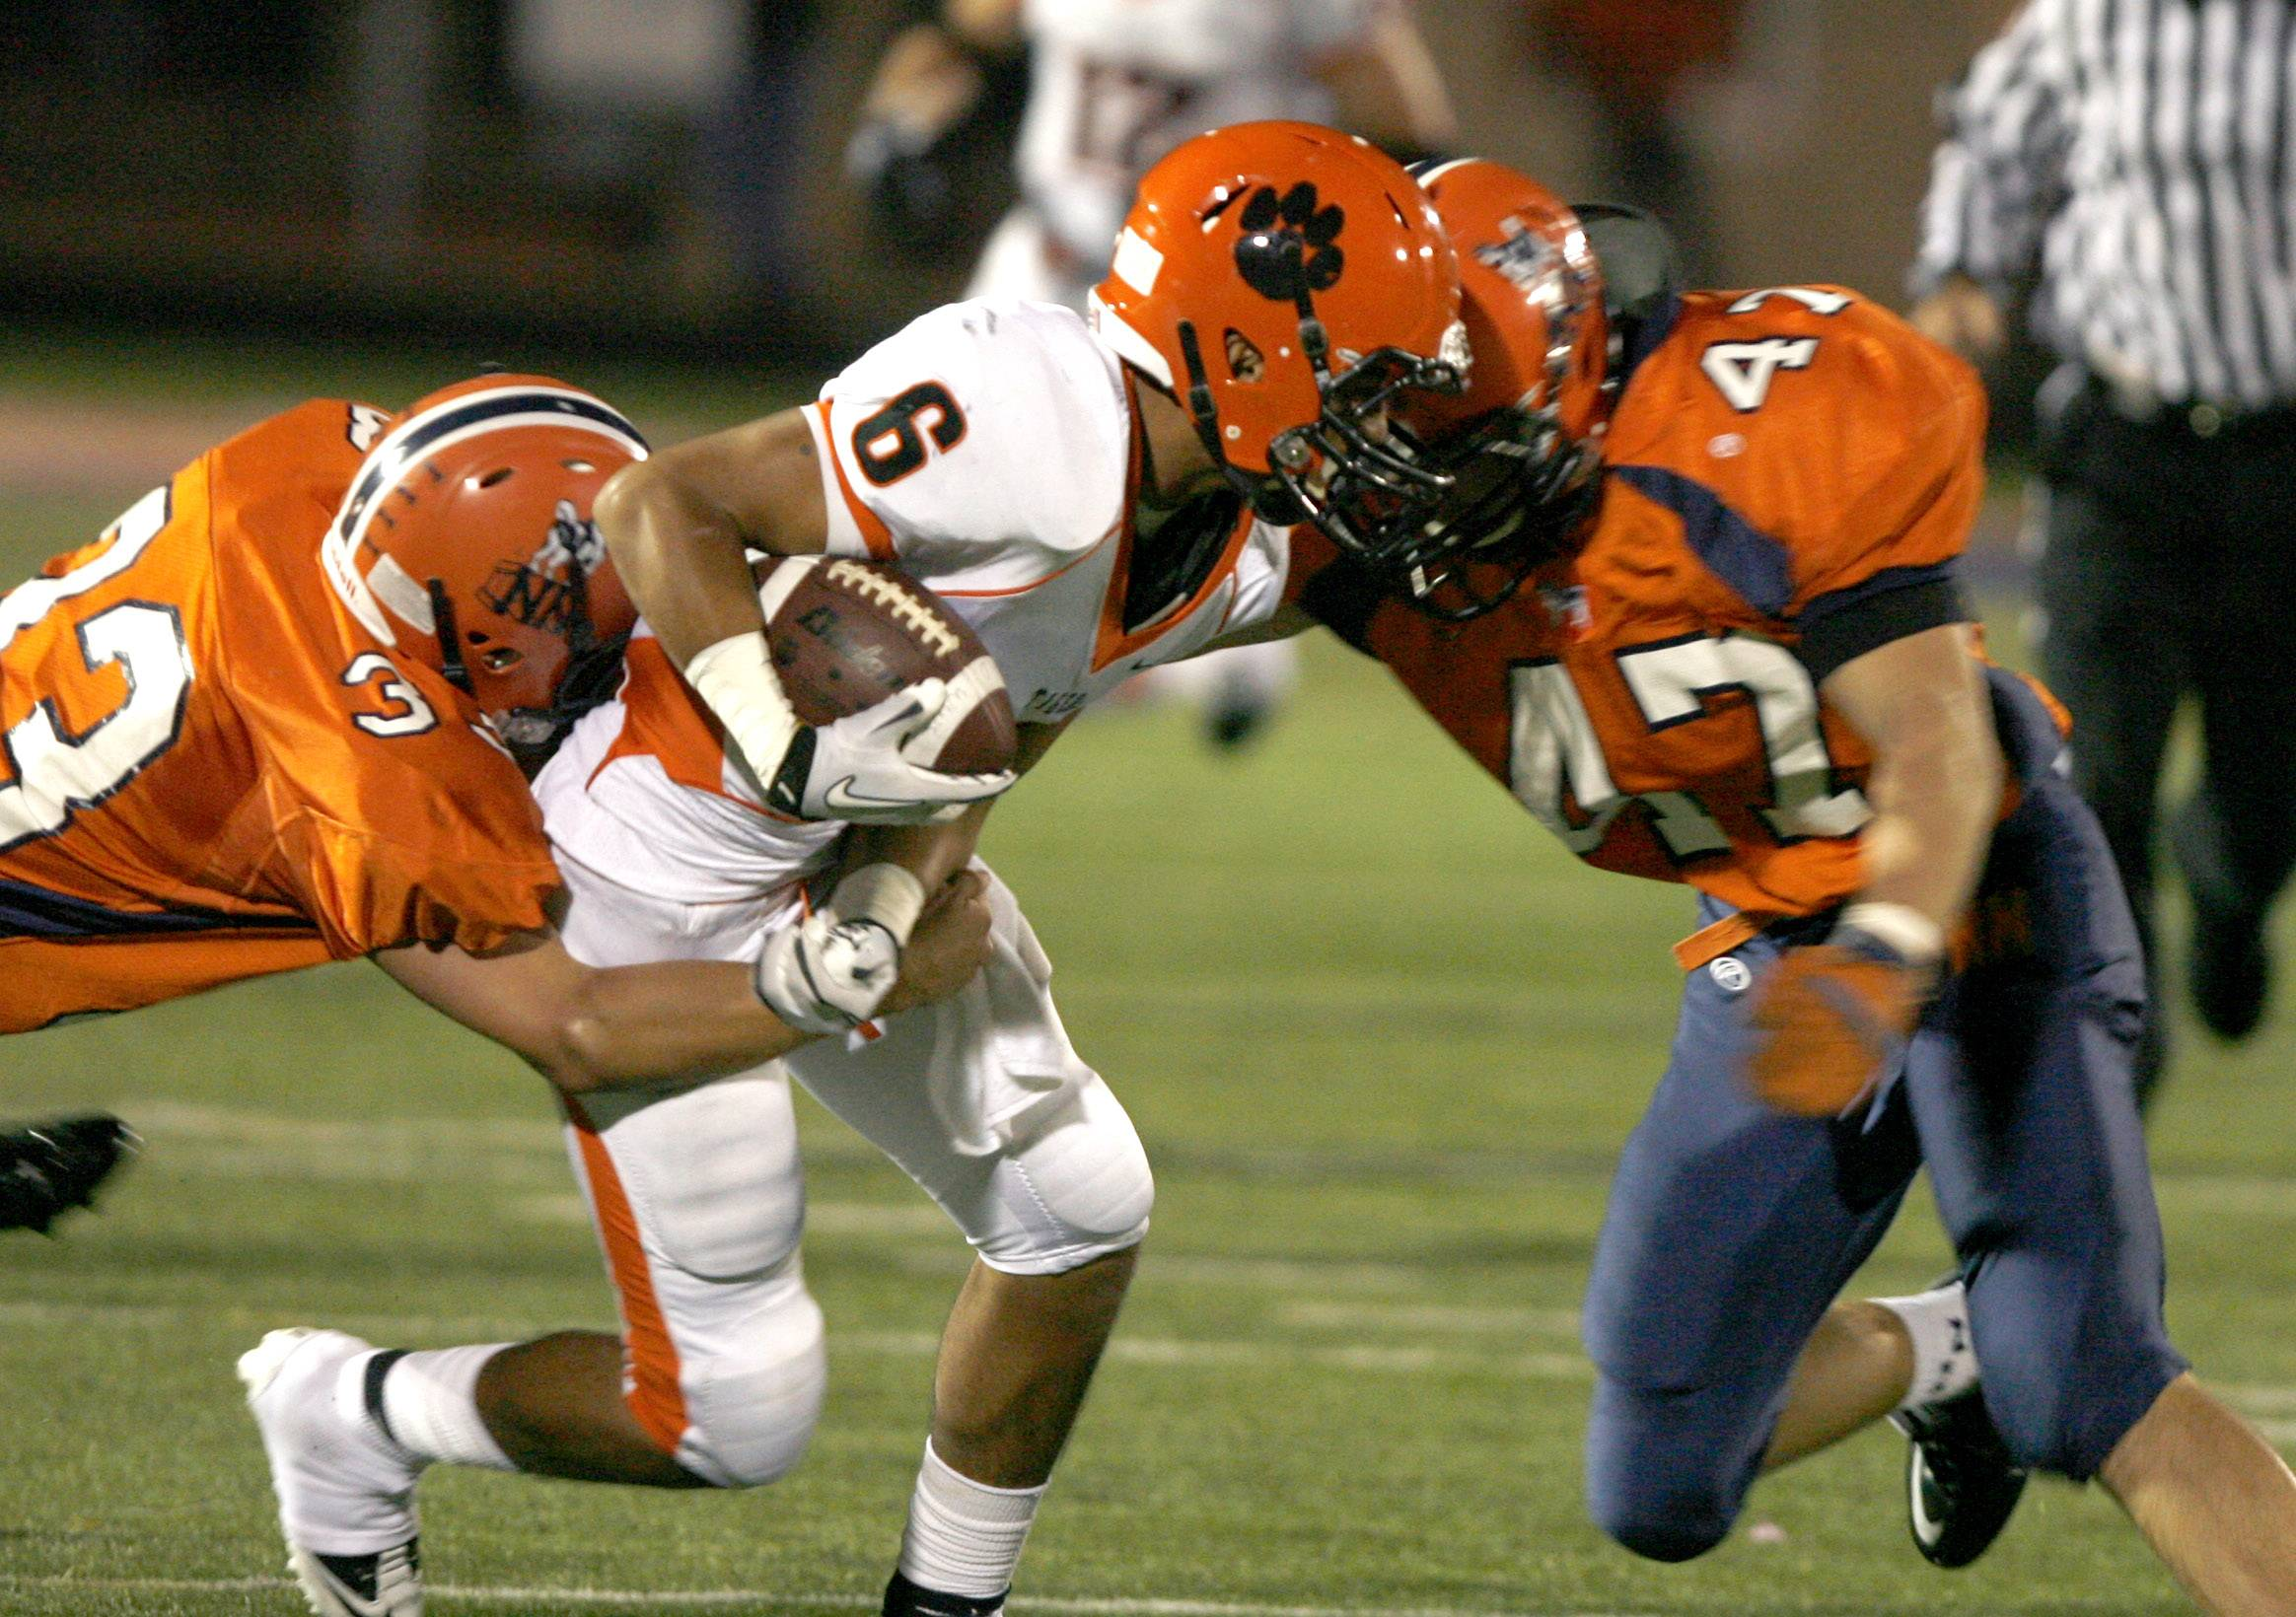 Players from Naperville North and Wheaton Warrenville South high schools clash in a 2011 match.